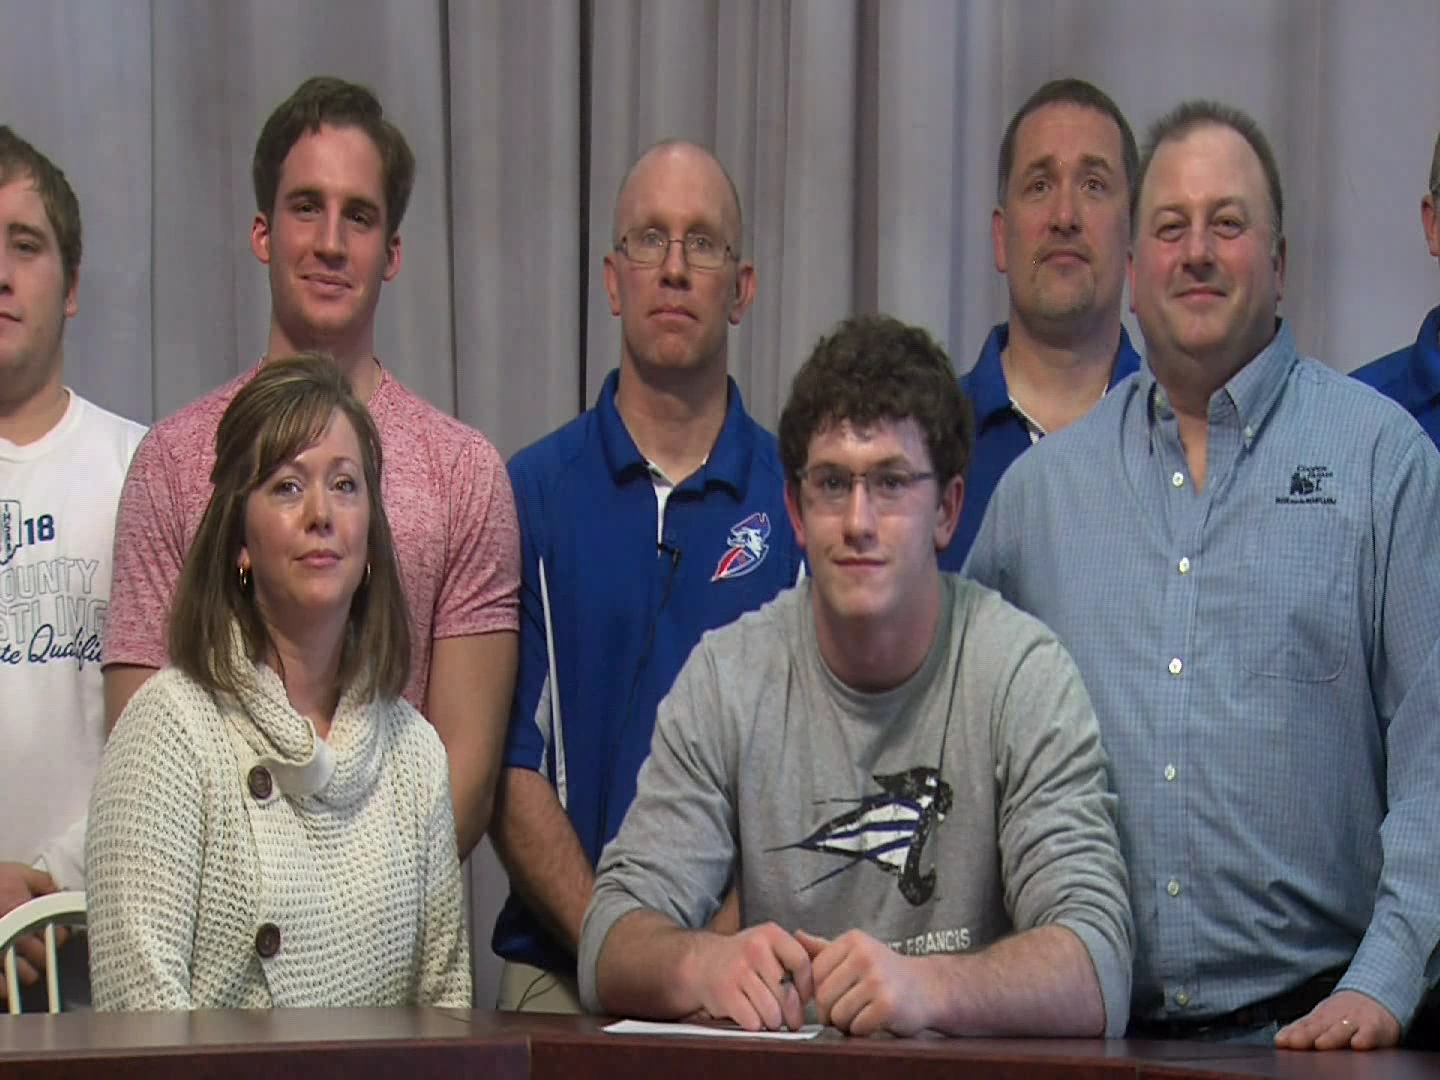 ETHAN THEURER SIGNS WITH ST. FRANCIS!